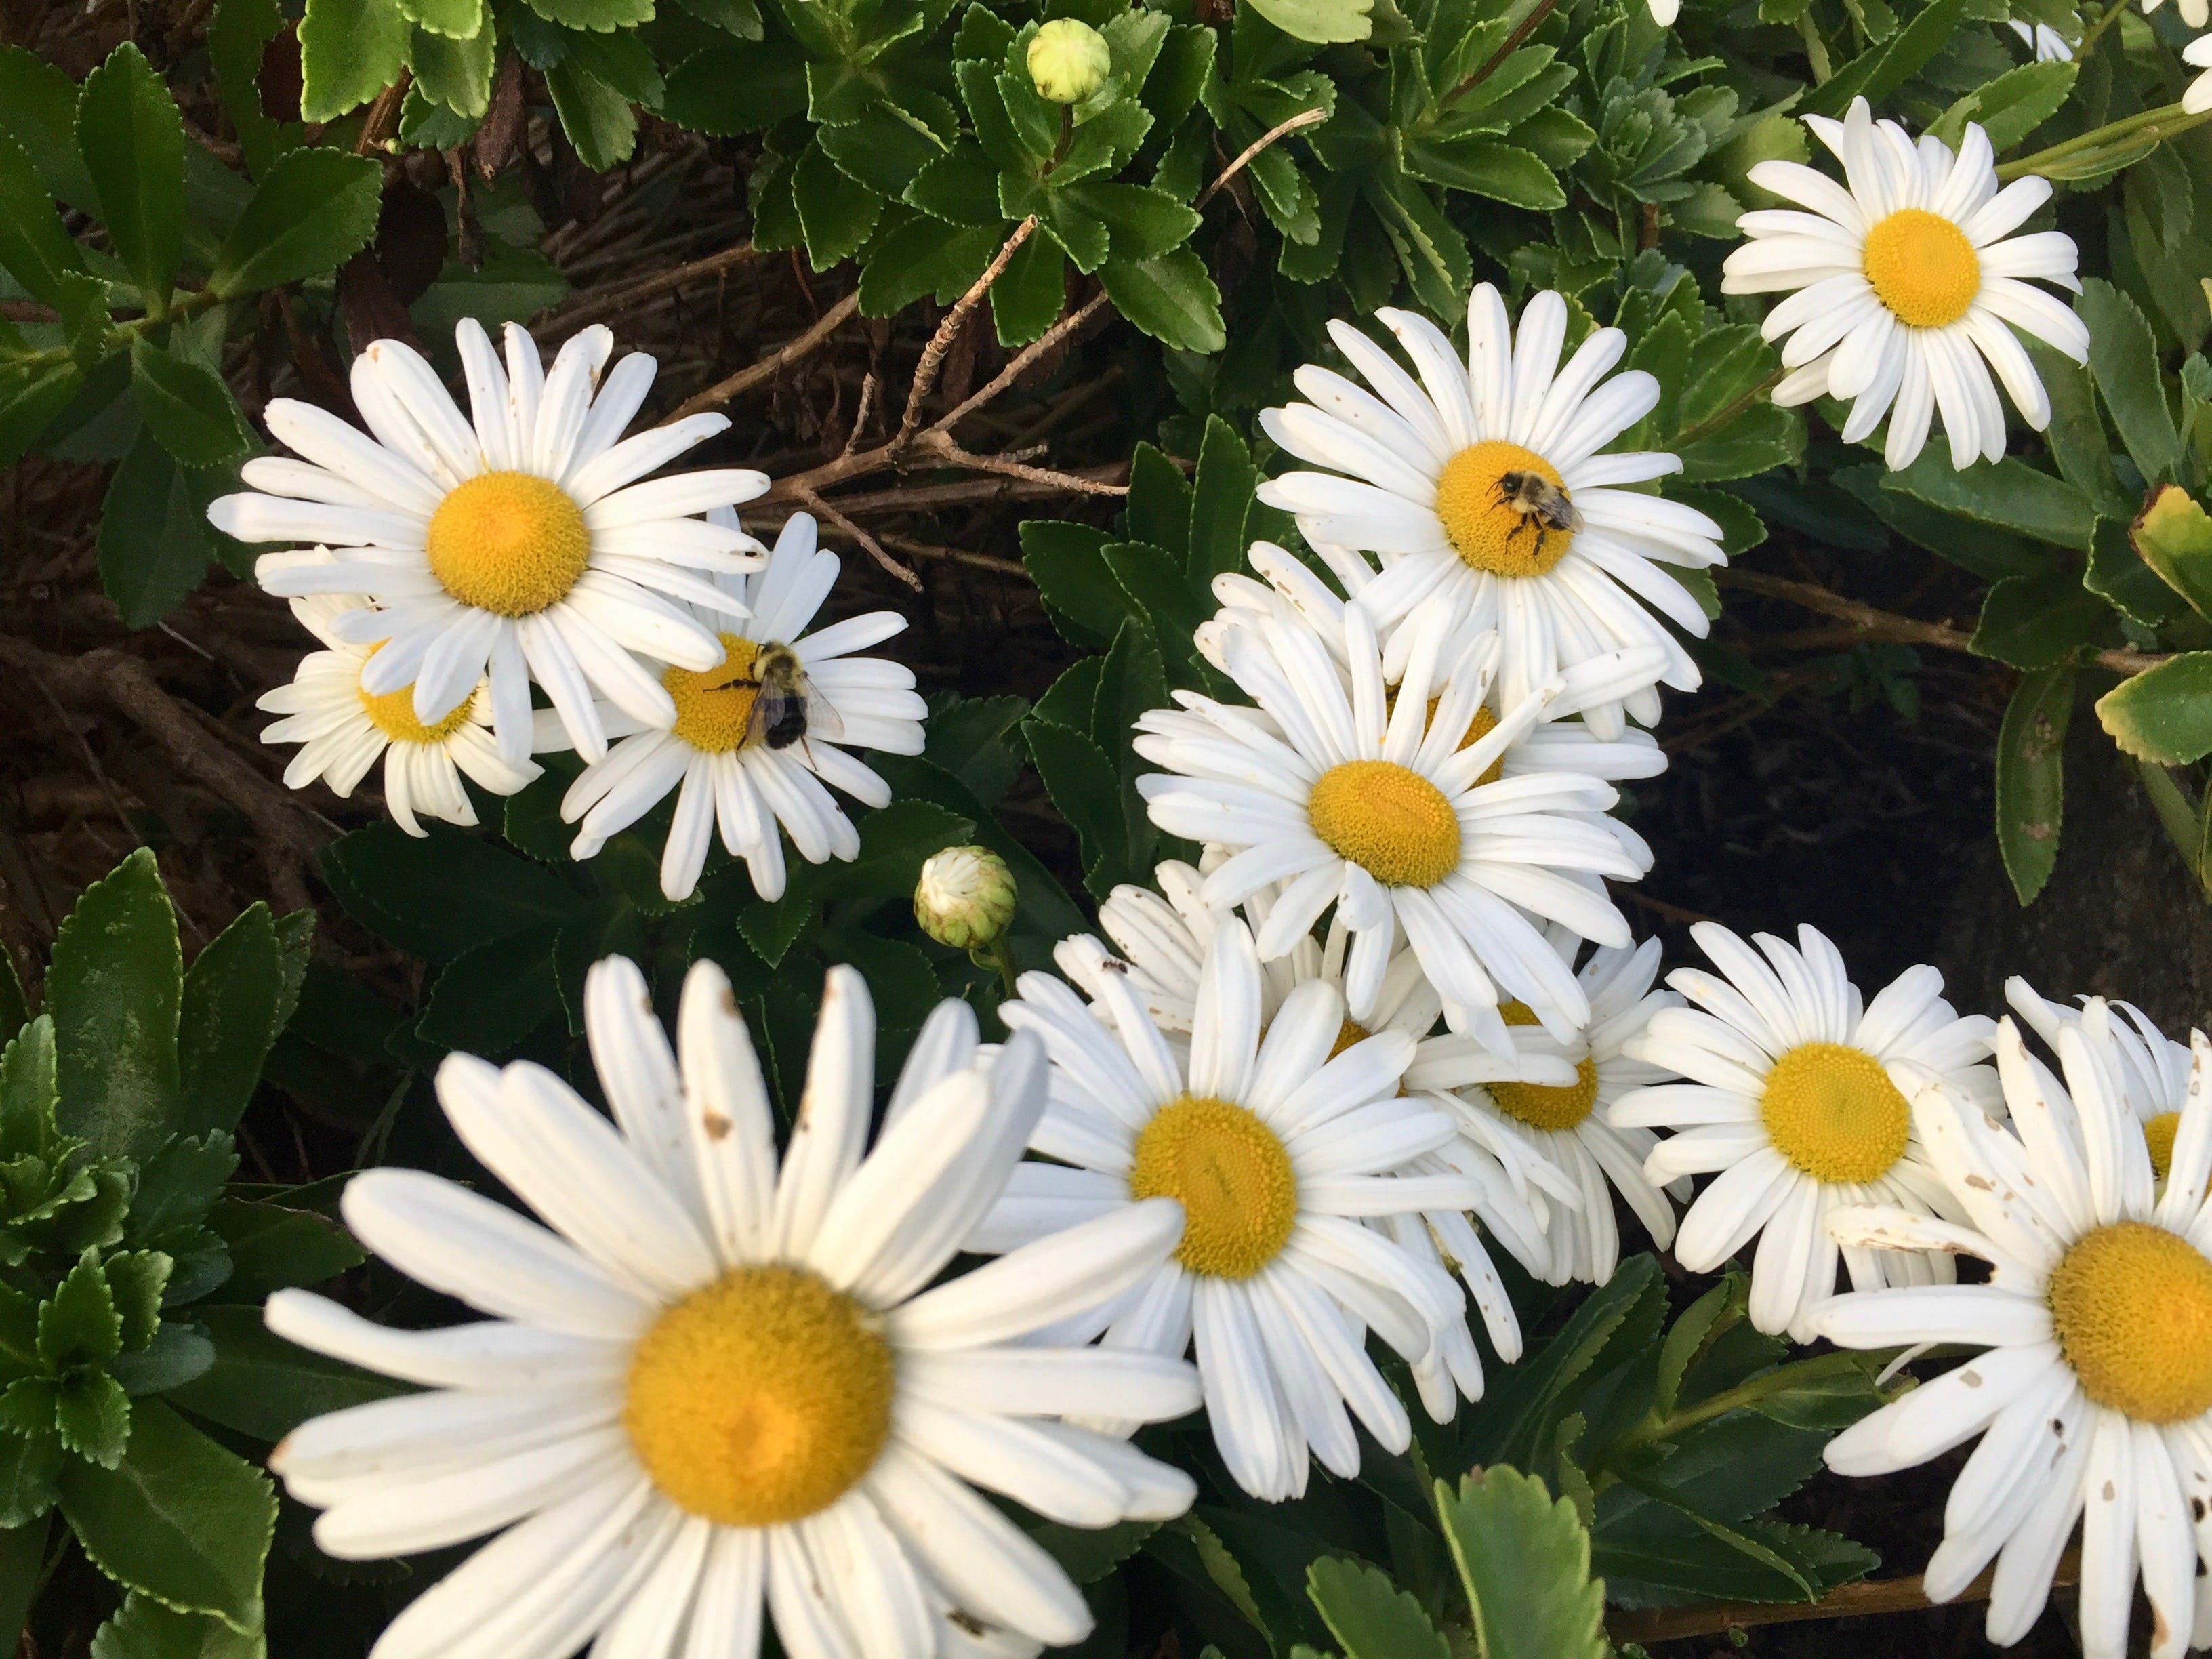 Free stock photo of bees, bees on daisies, bees on flowers, daisies